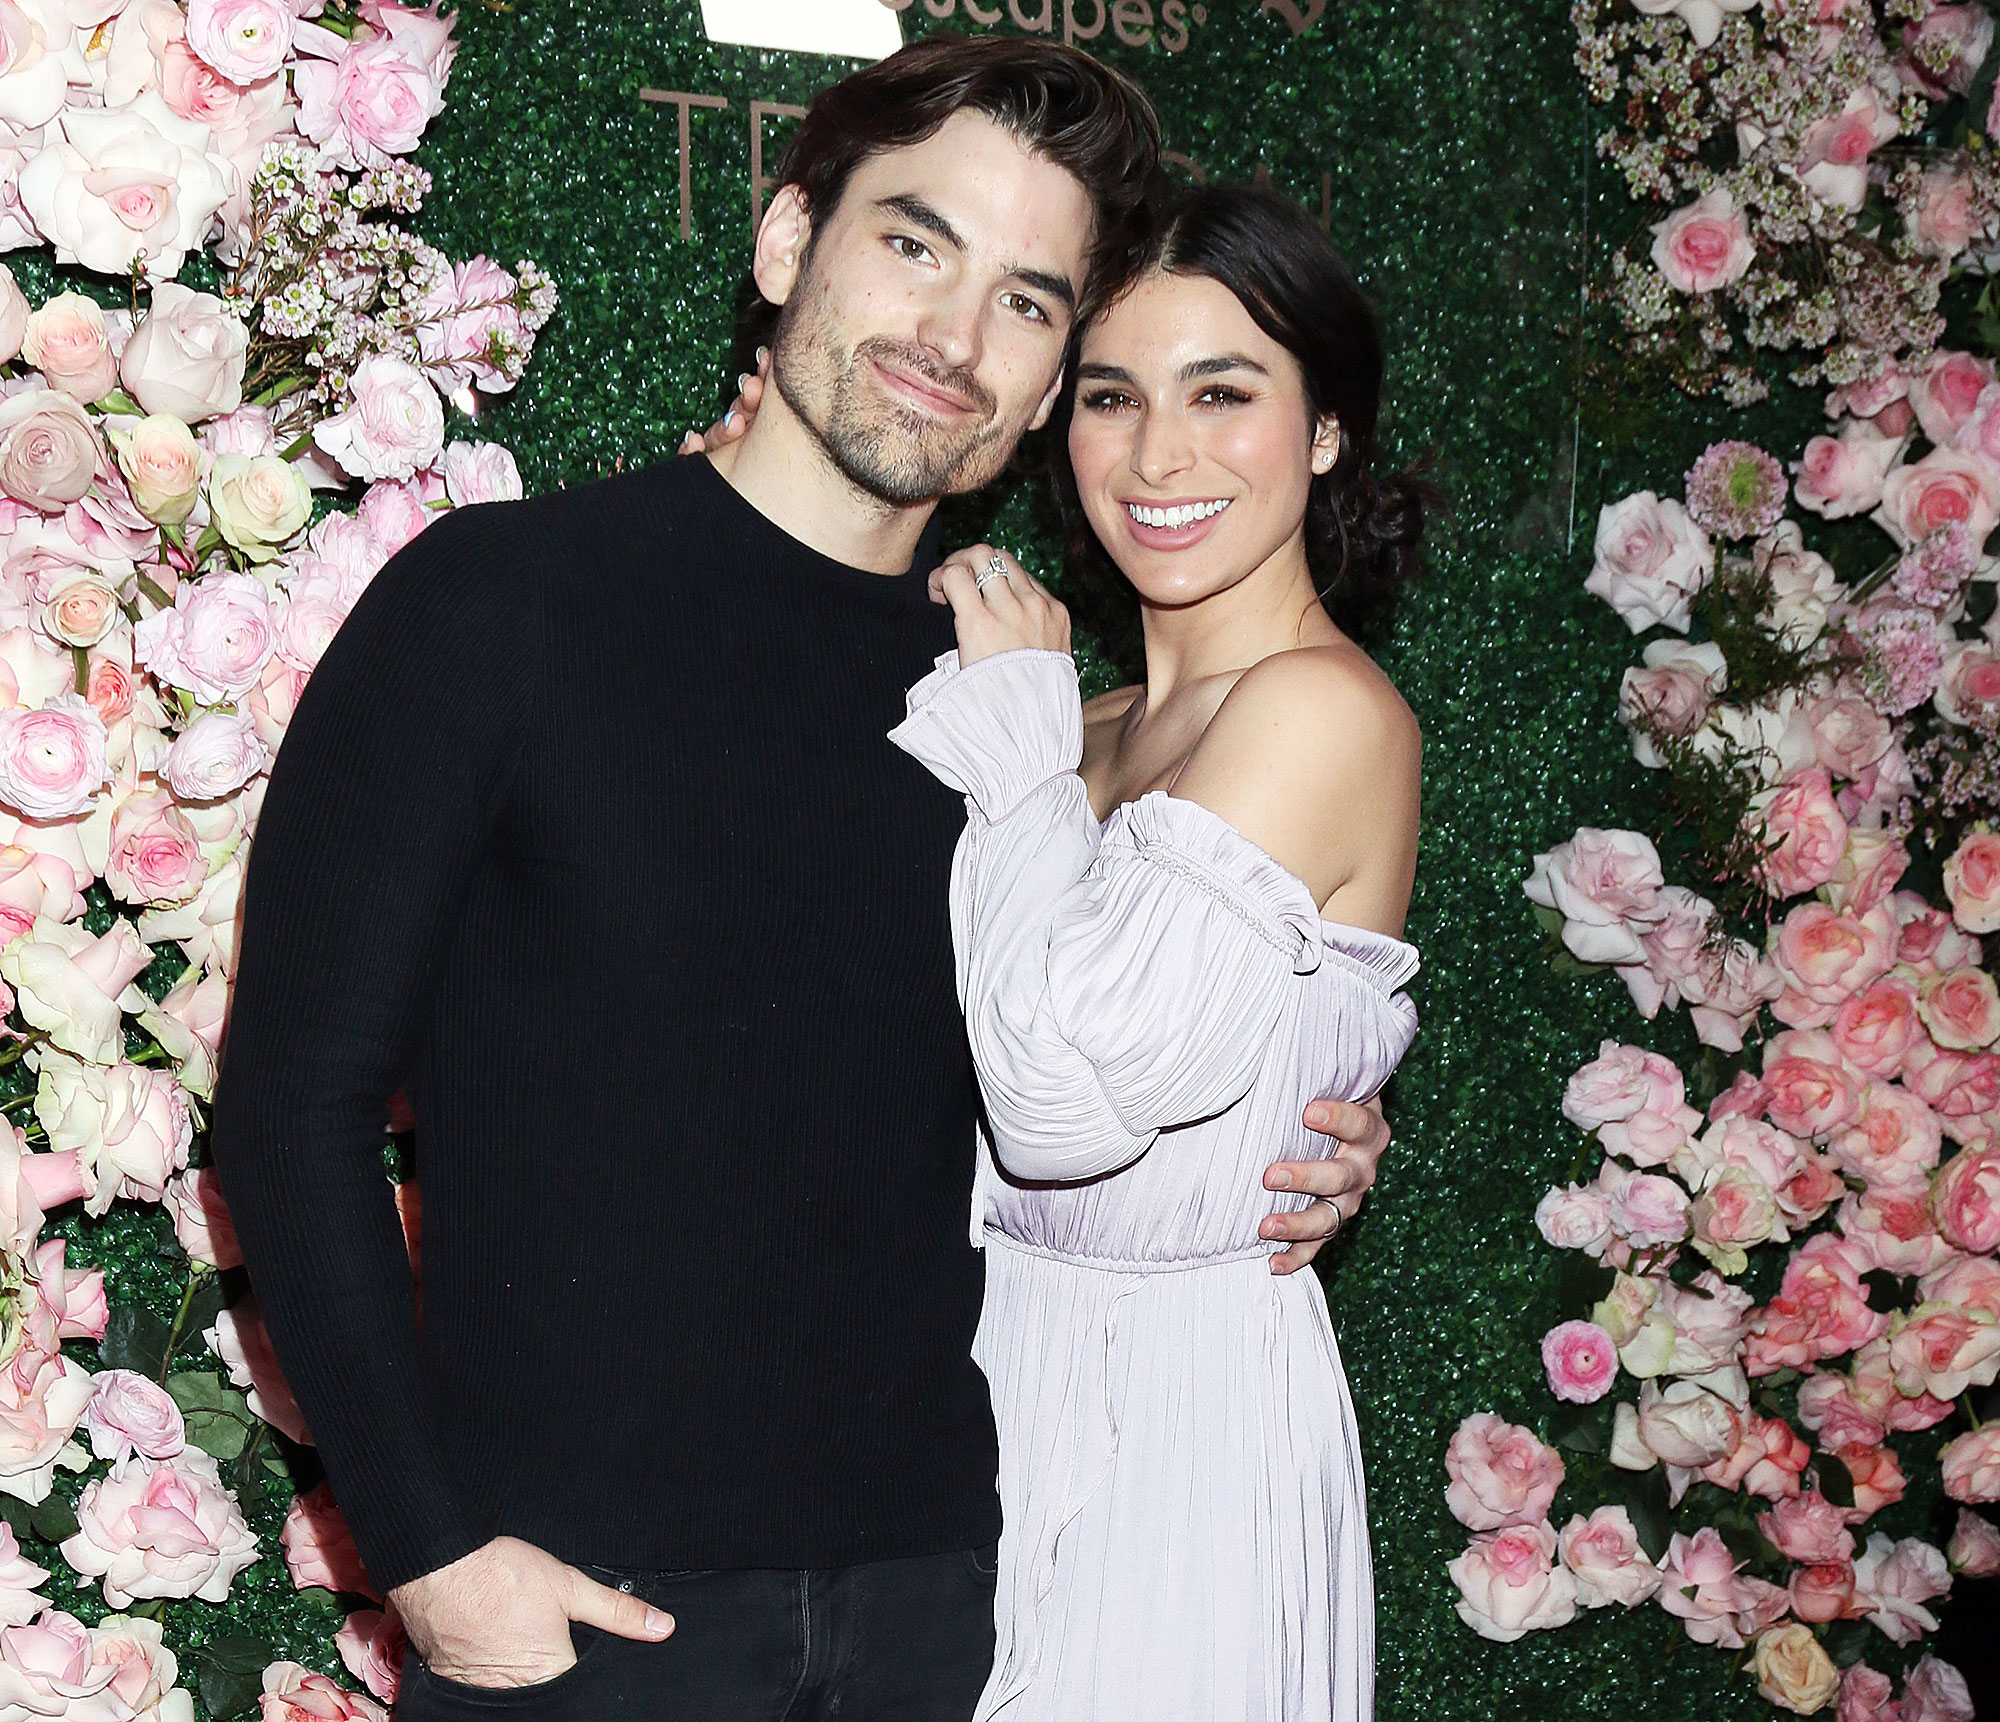 Ashley Iaconetti and Jared HaIbon Reveal What They Have Learned About Each Other in Quarantine